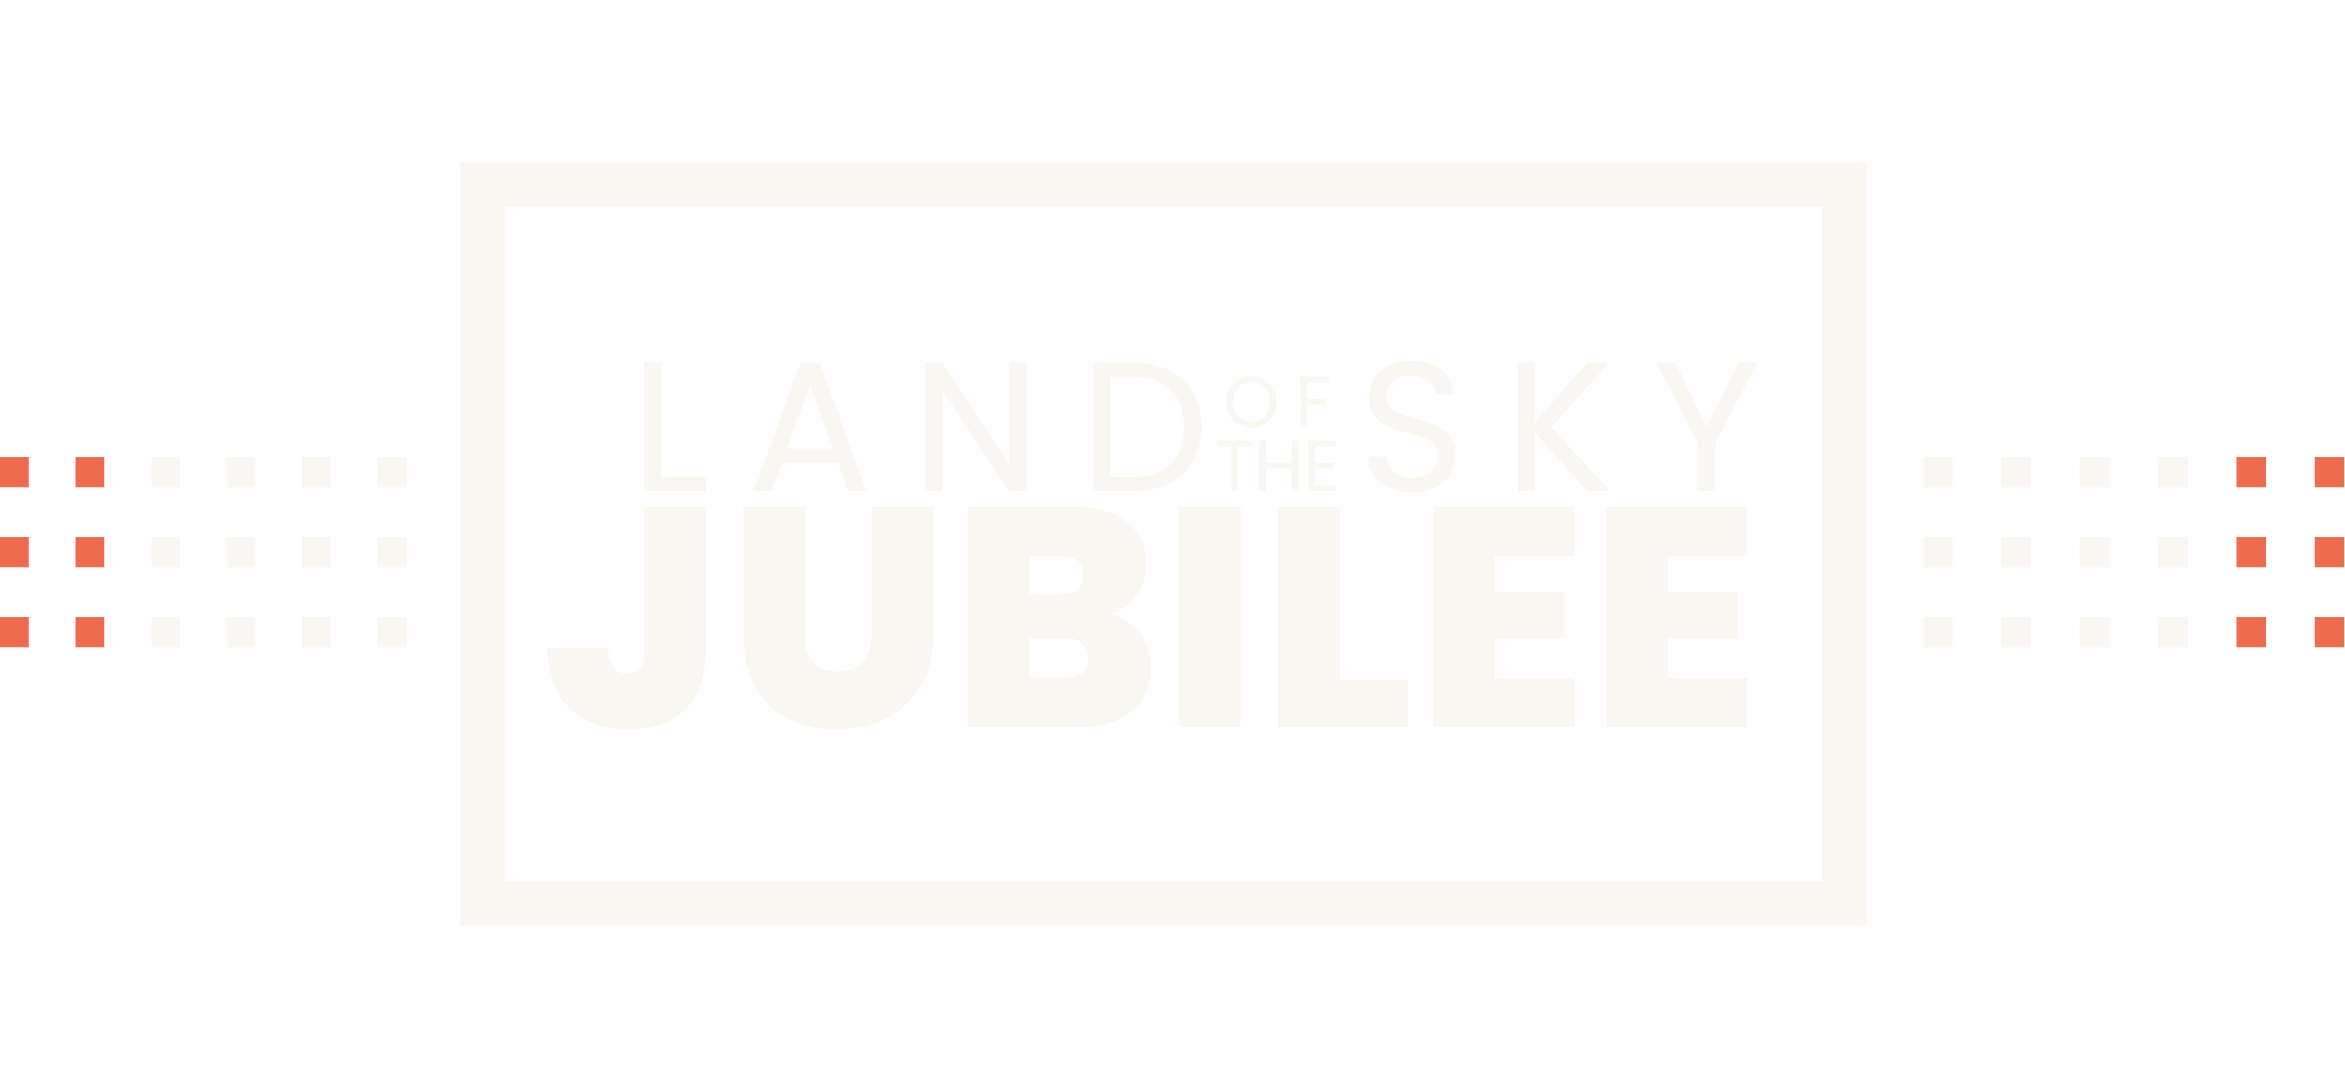 Land of the Sky Jubilee | July 28, 2021 - August 1, 2021